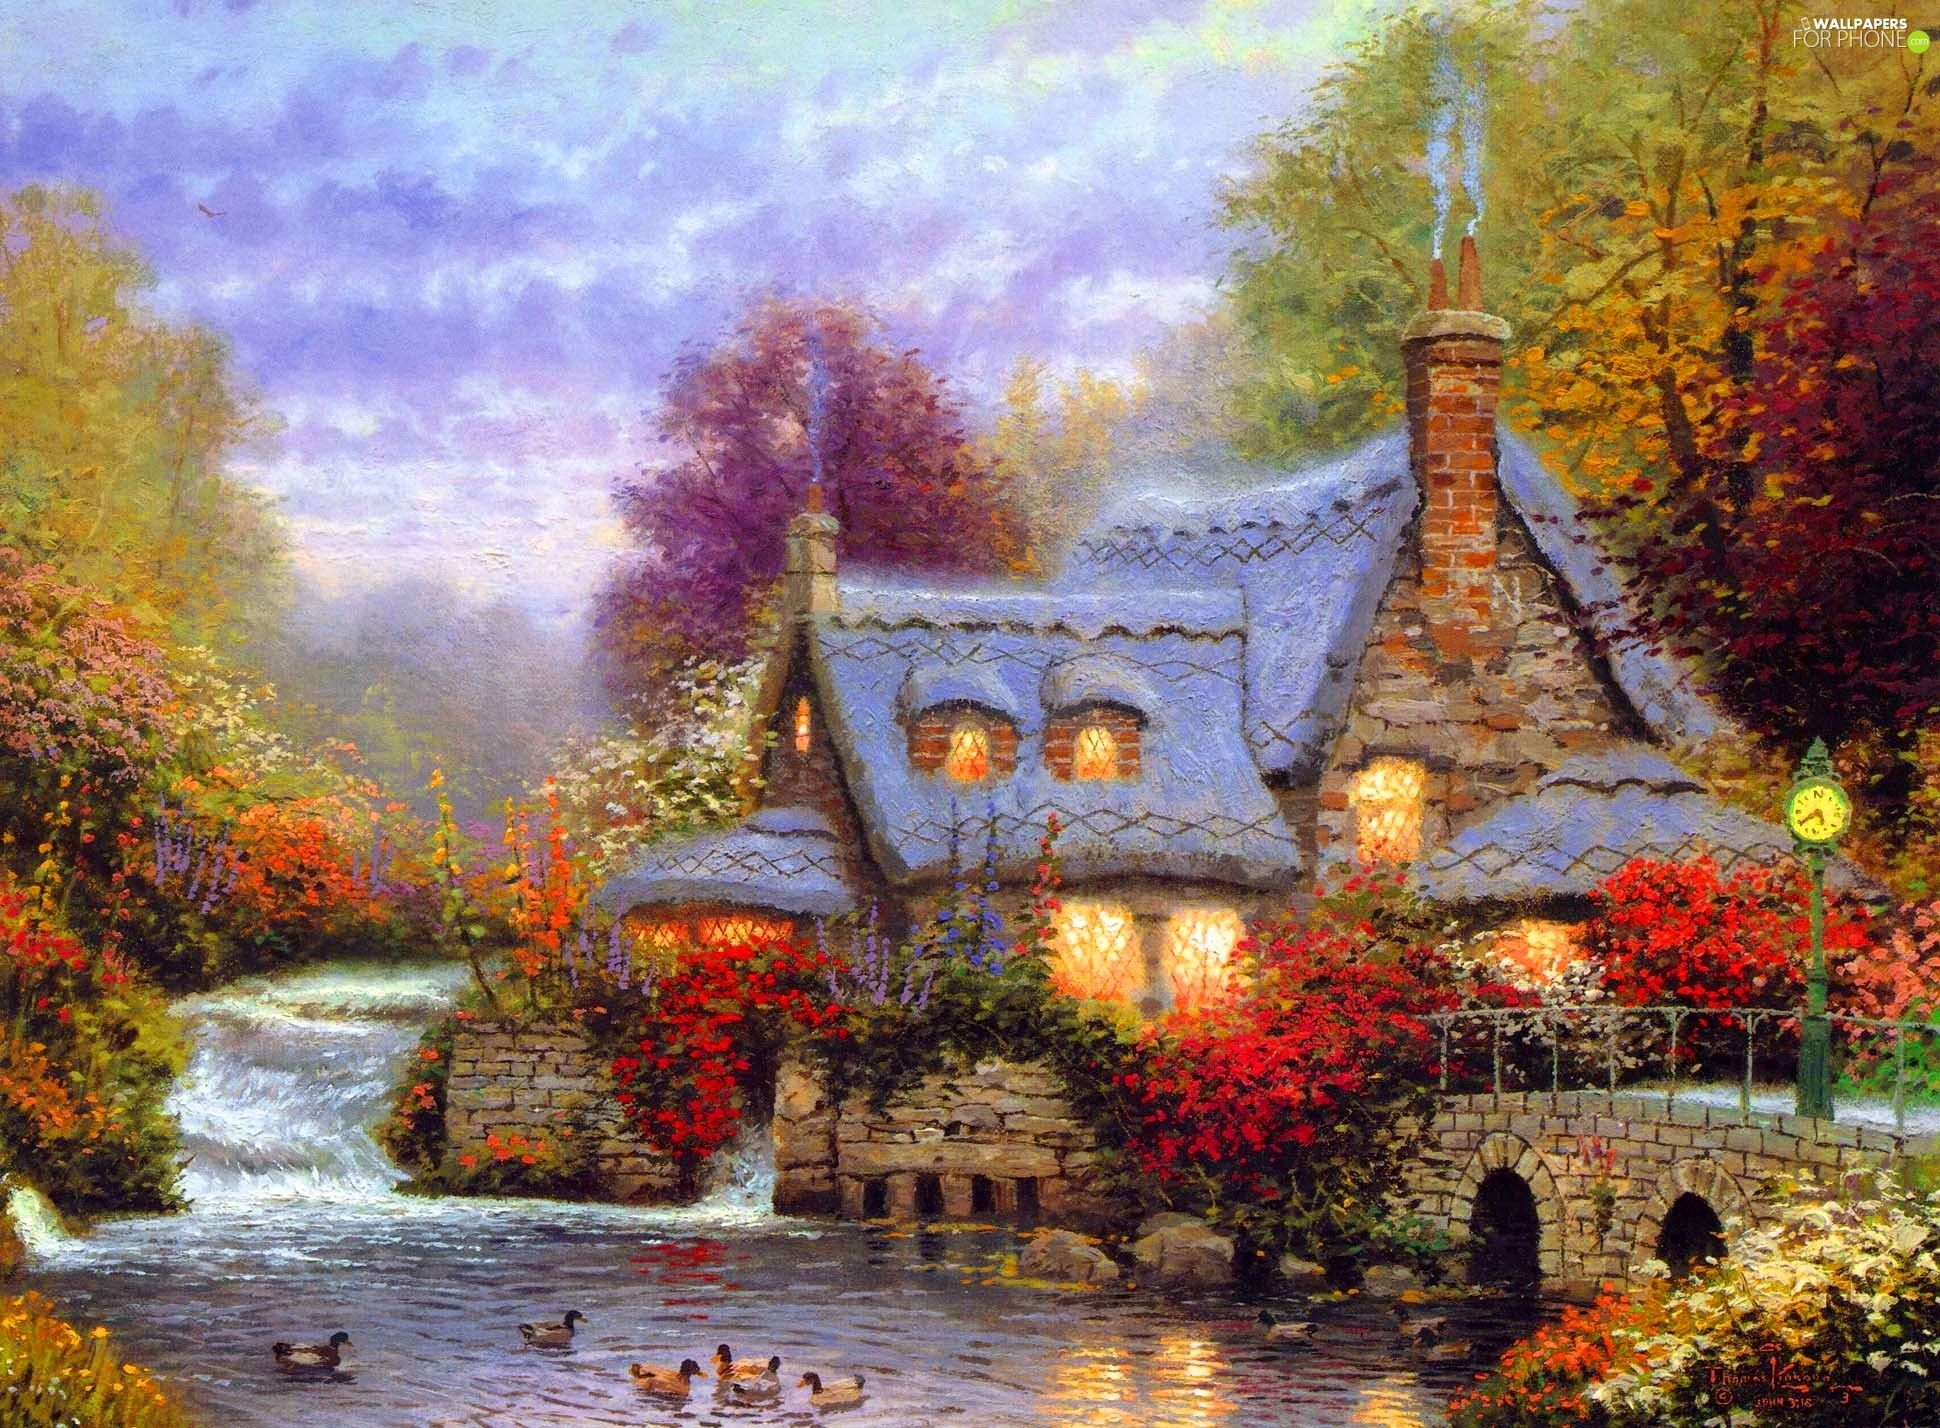 Download thomas kinkade autumn wallpaper high quality for Quality wallpaper for home